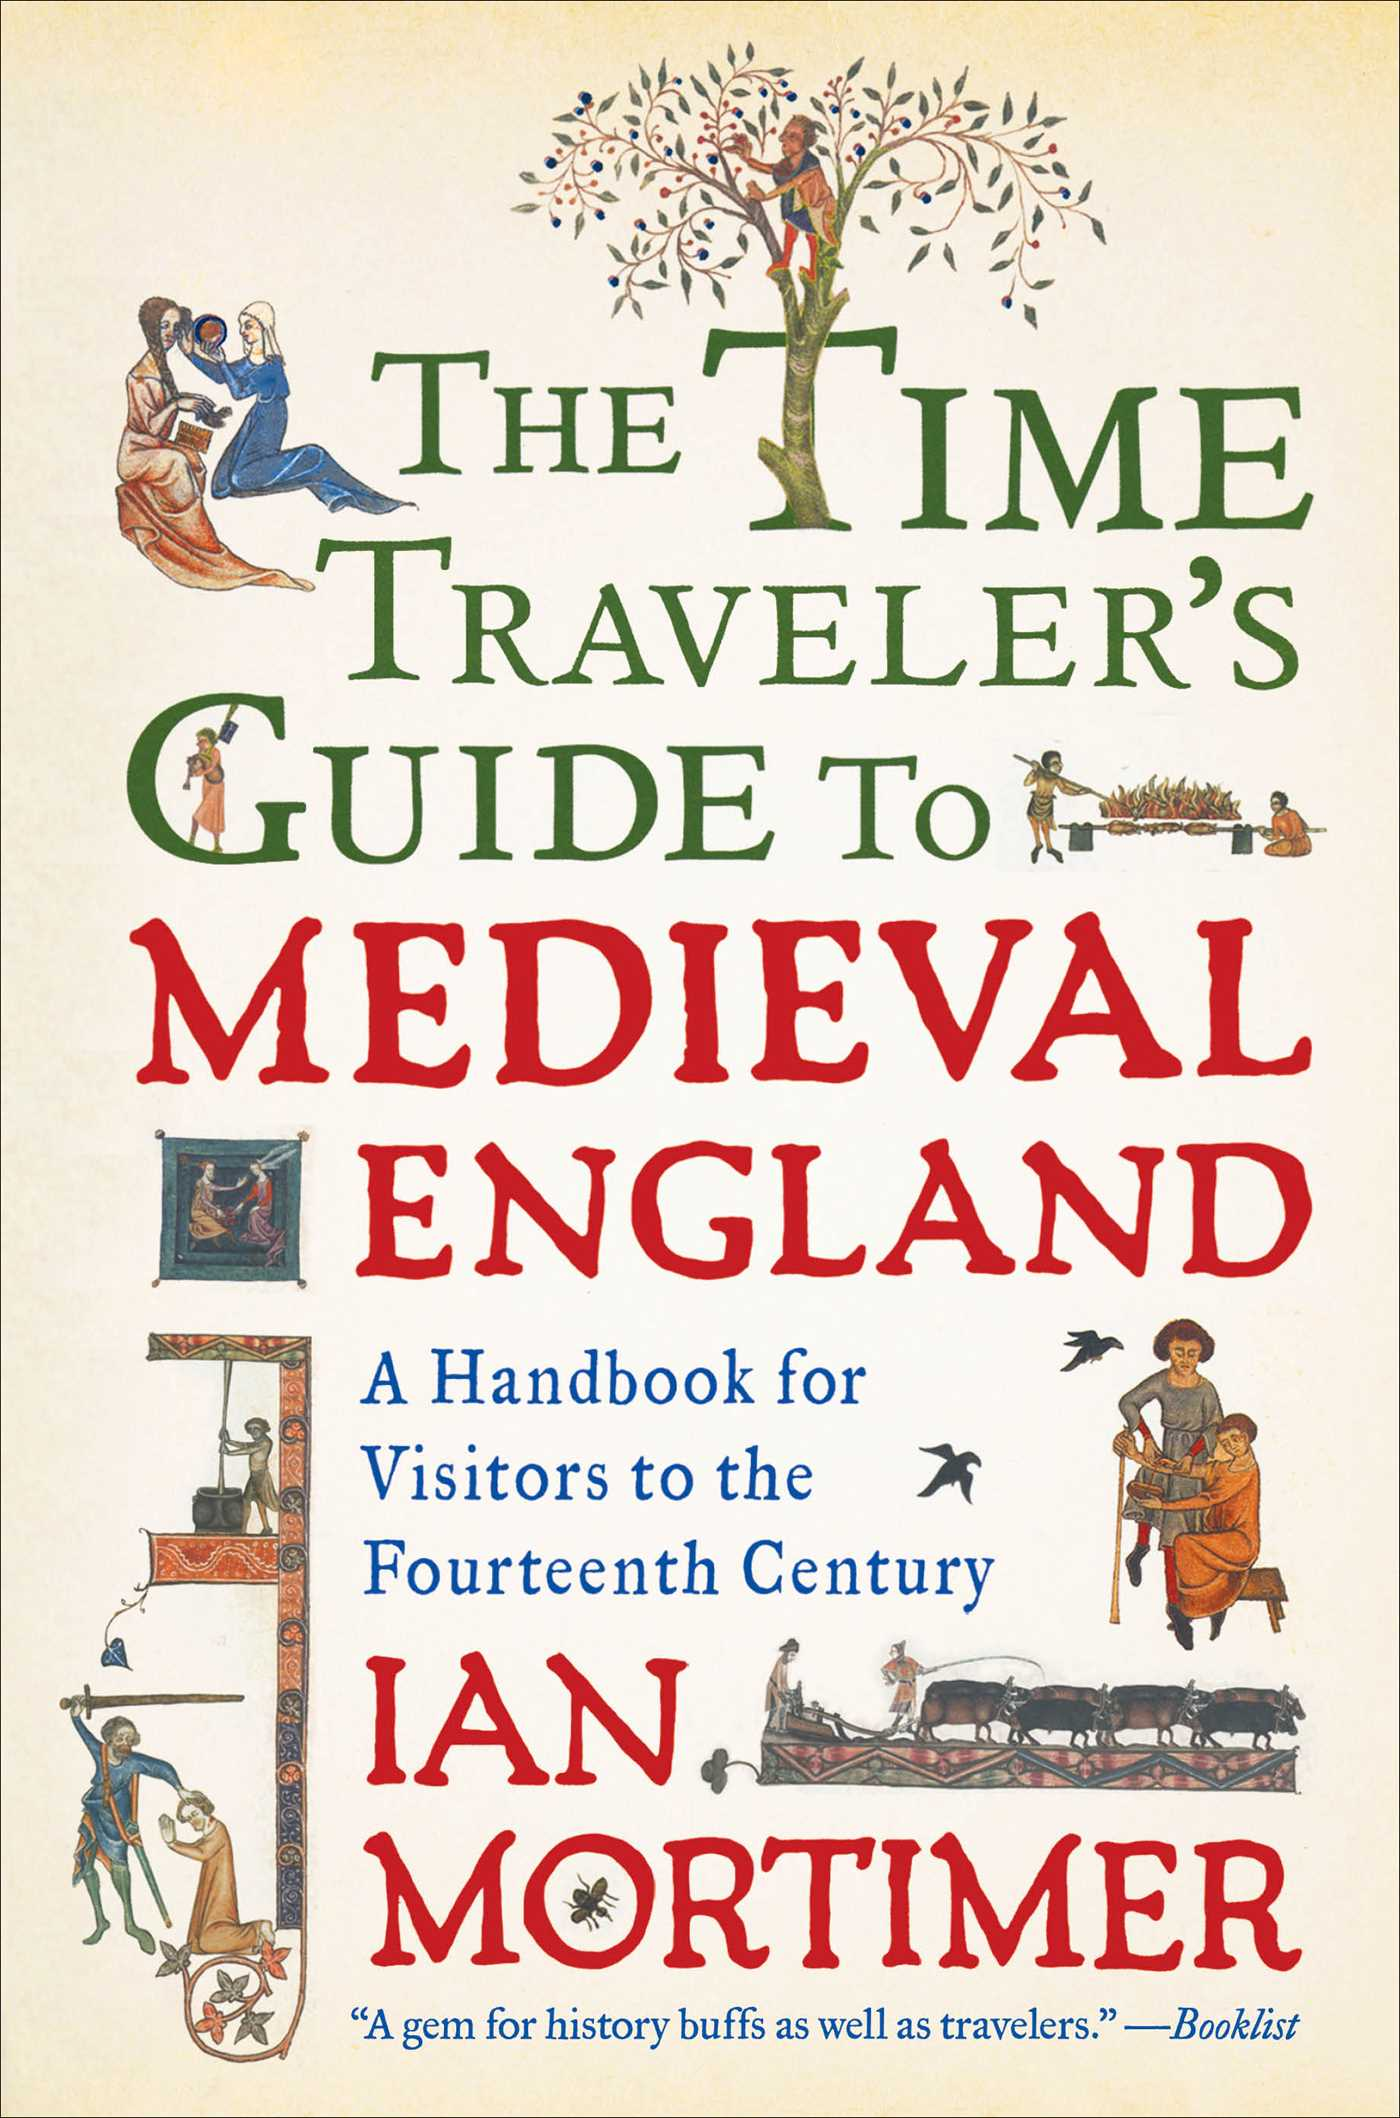 The time travelers guide to medieval england 9781439149140 hr